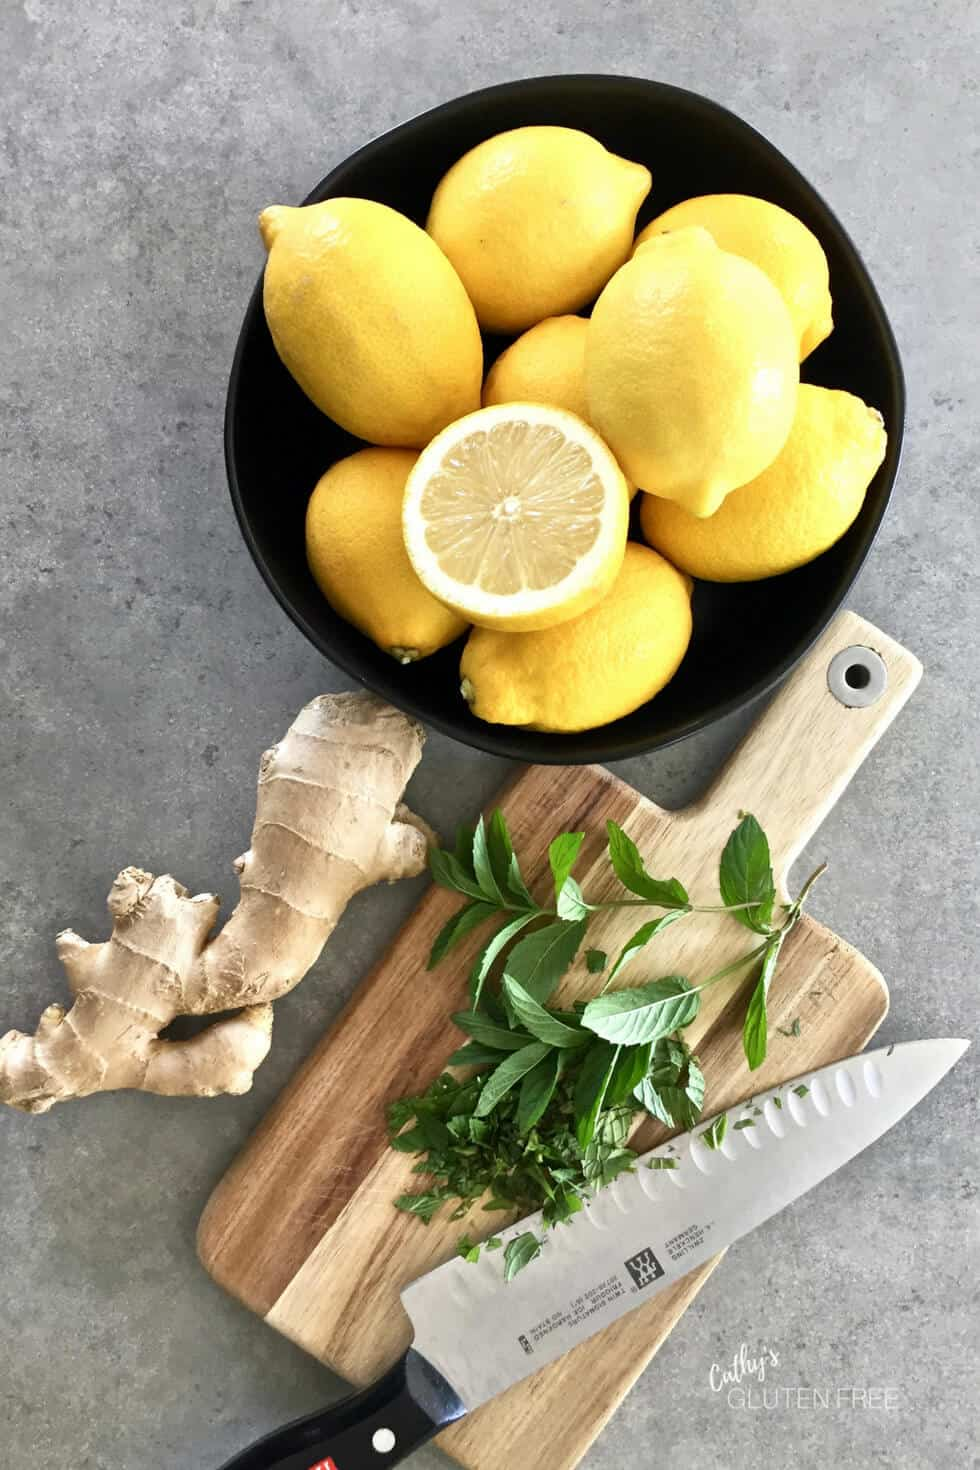 Lemons, Ginger, and Mint